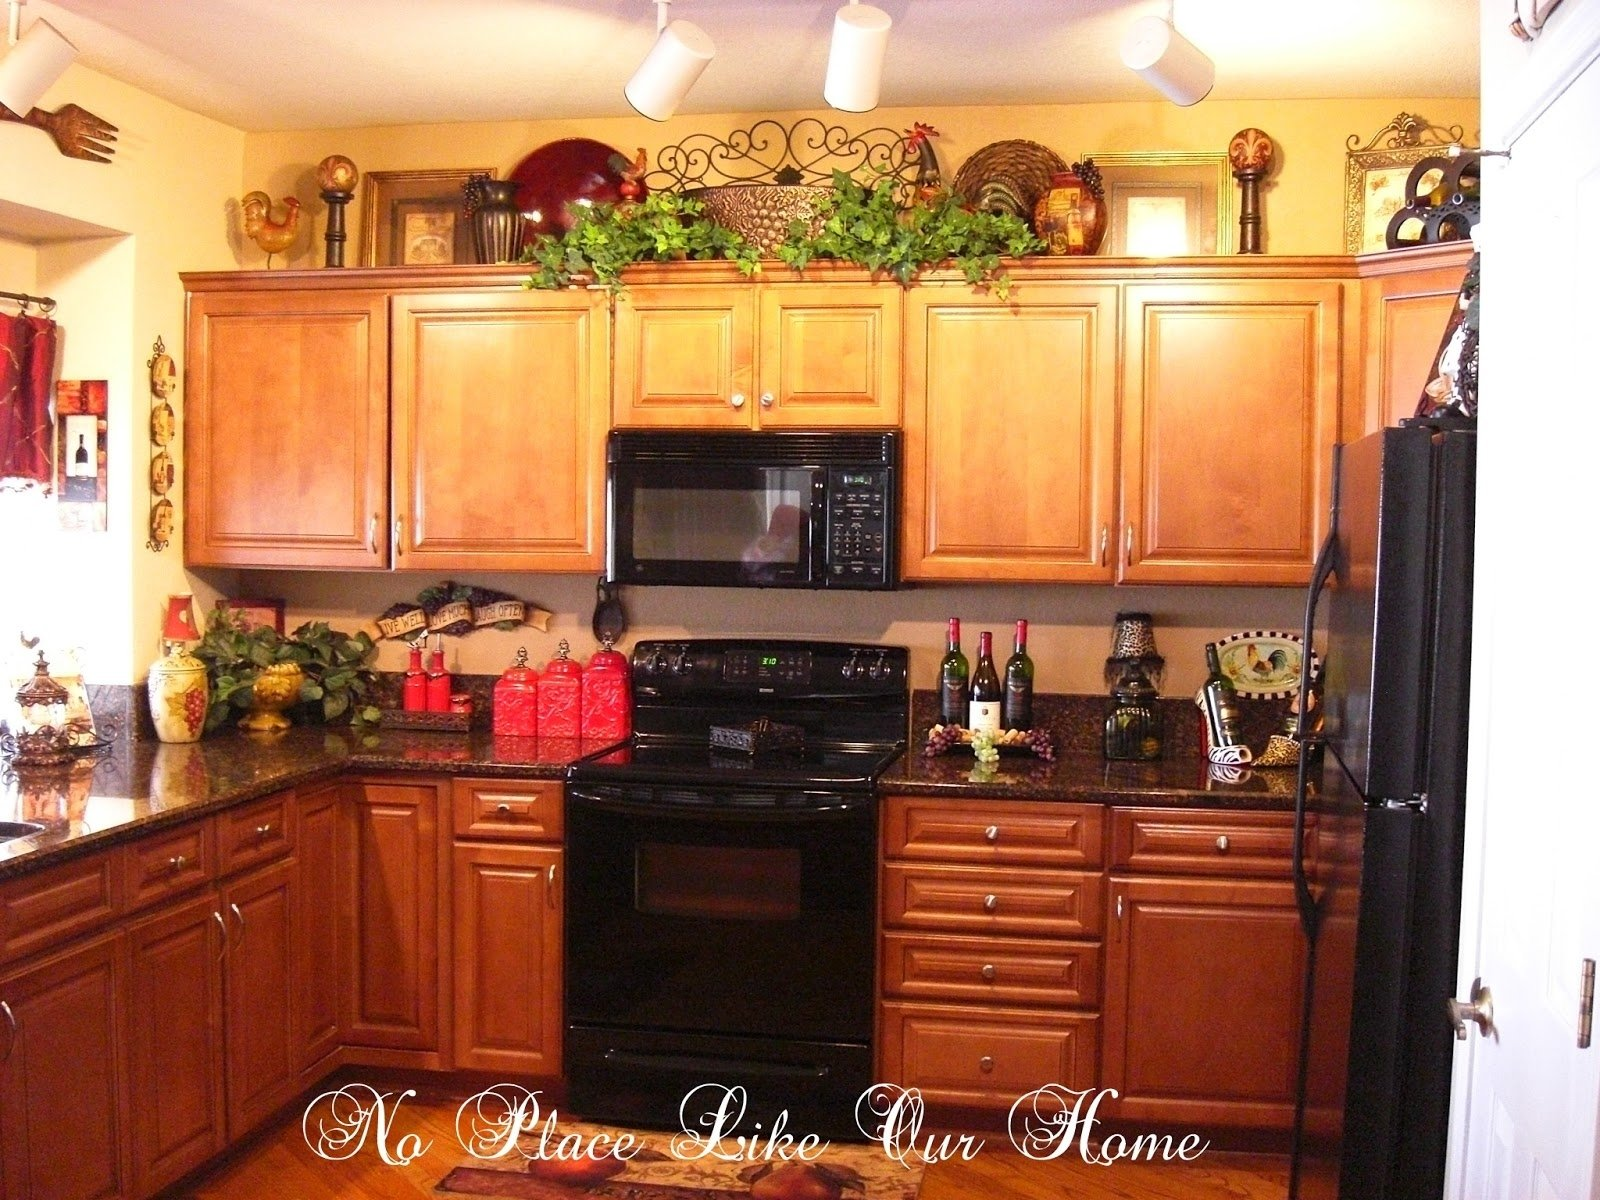 10 Lovely Decorating Ideas For Above Kitchen Cabinets decorating ideas for above kitchen cabinets a bunch of ideas for 2021